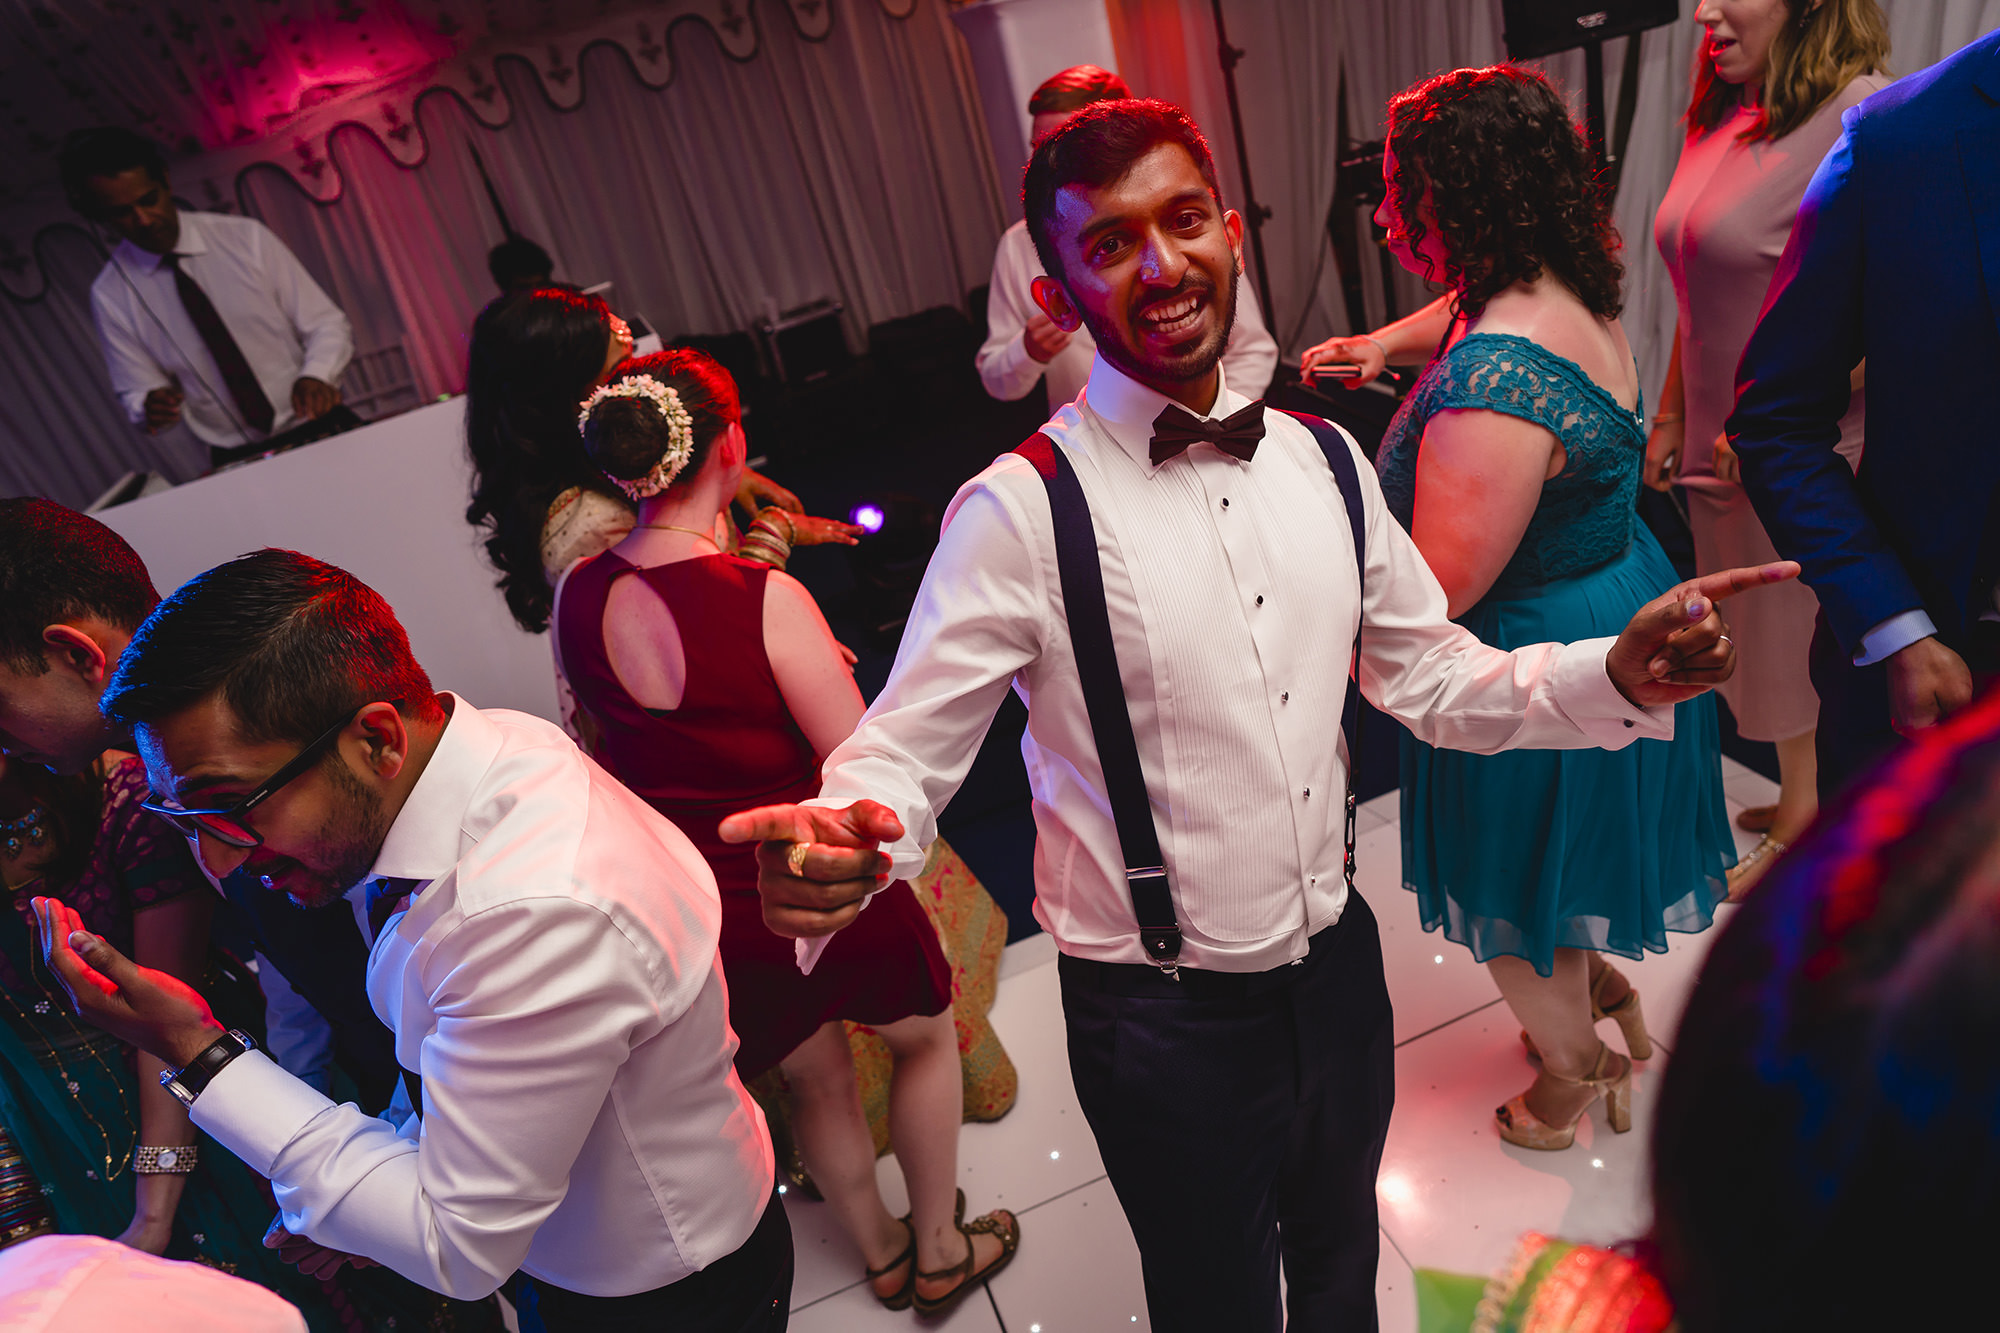 groom dancing at his wedding reception at poundon house